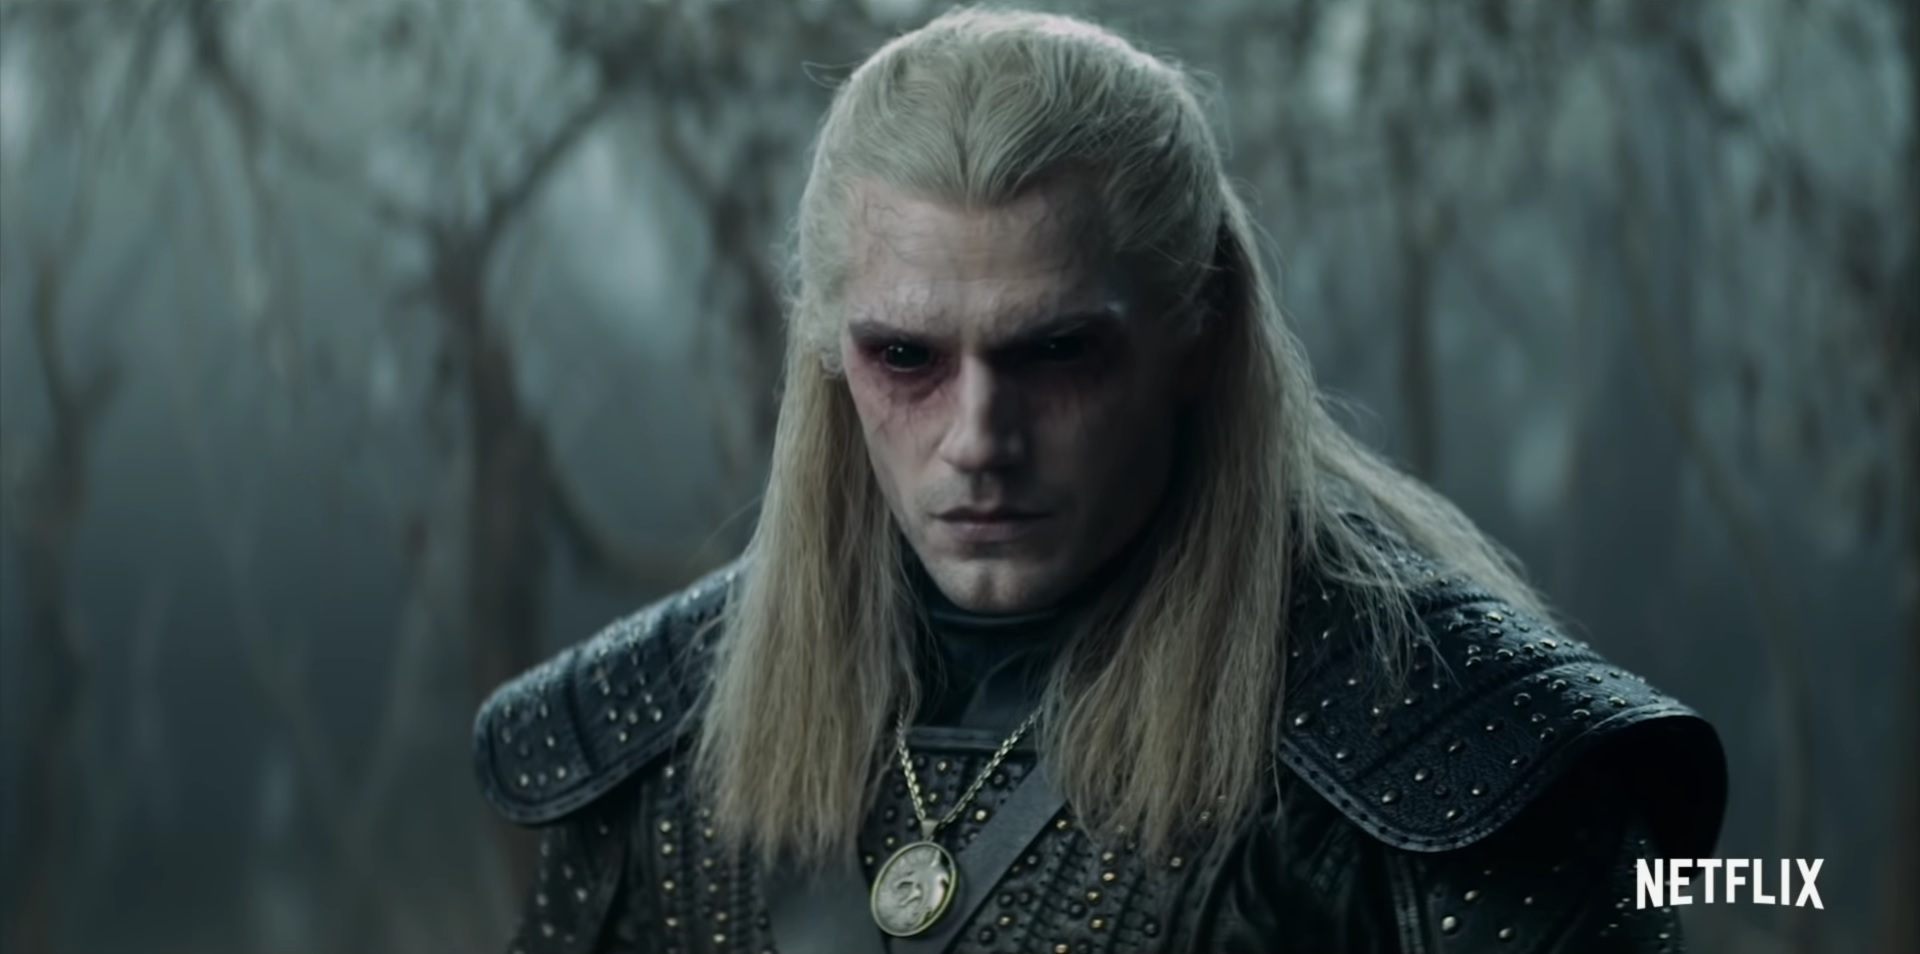 Here's our first look at Netflix's The Witcher in motion screenshot